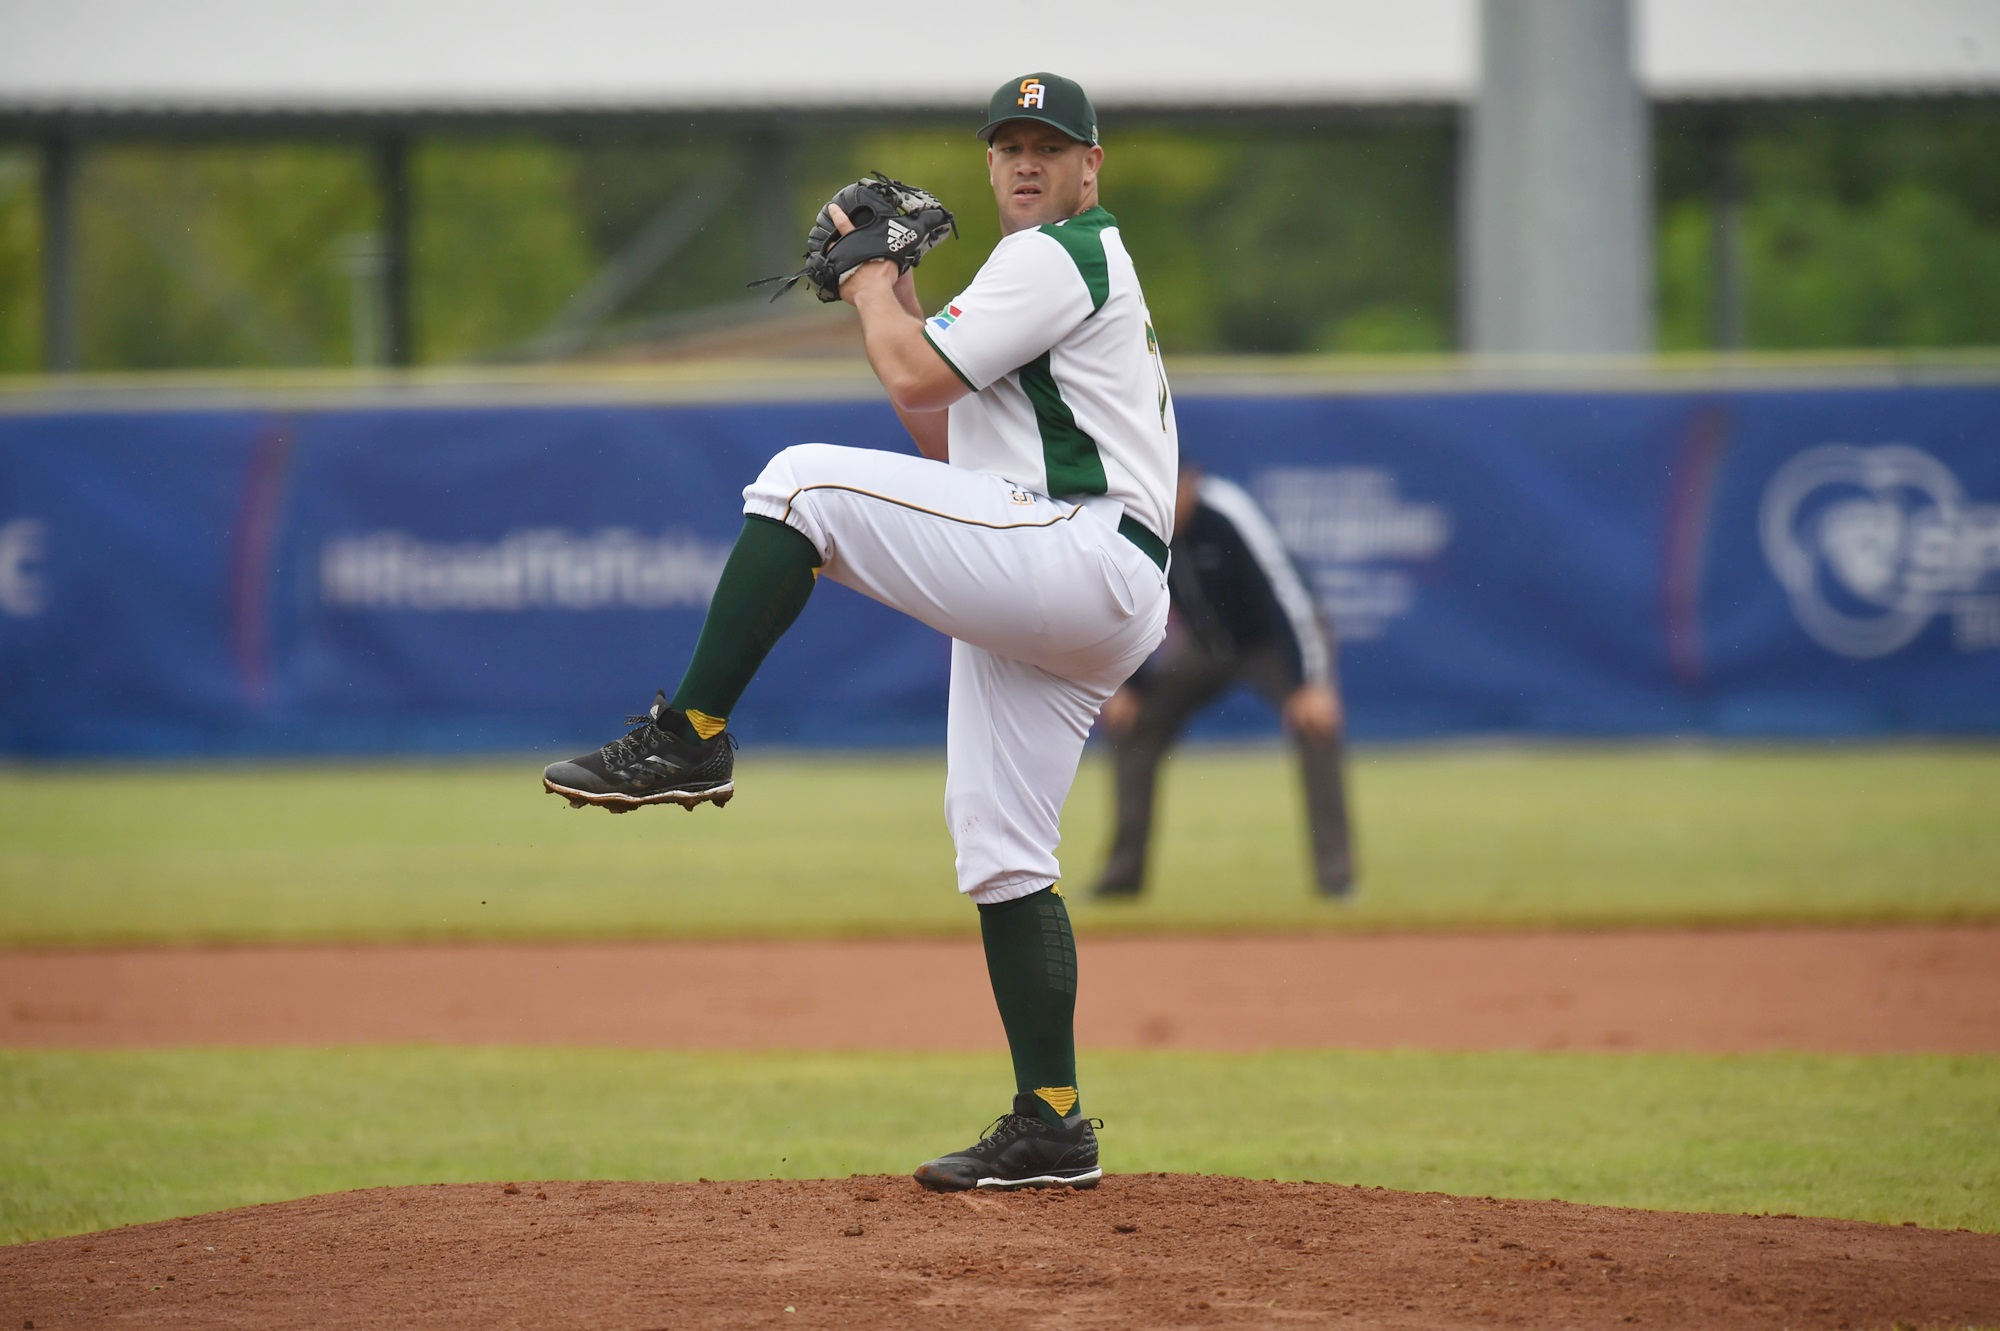 Control issue by South Africa's Jared Elario allowed Israel to take an early lead